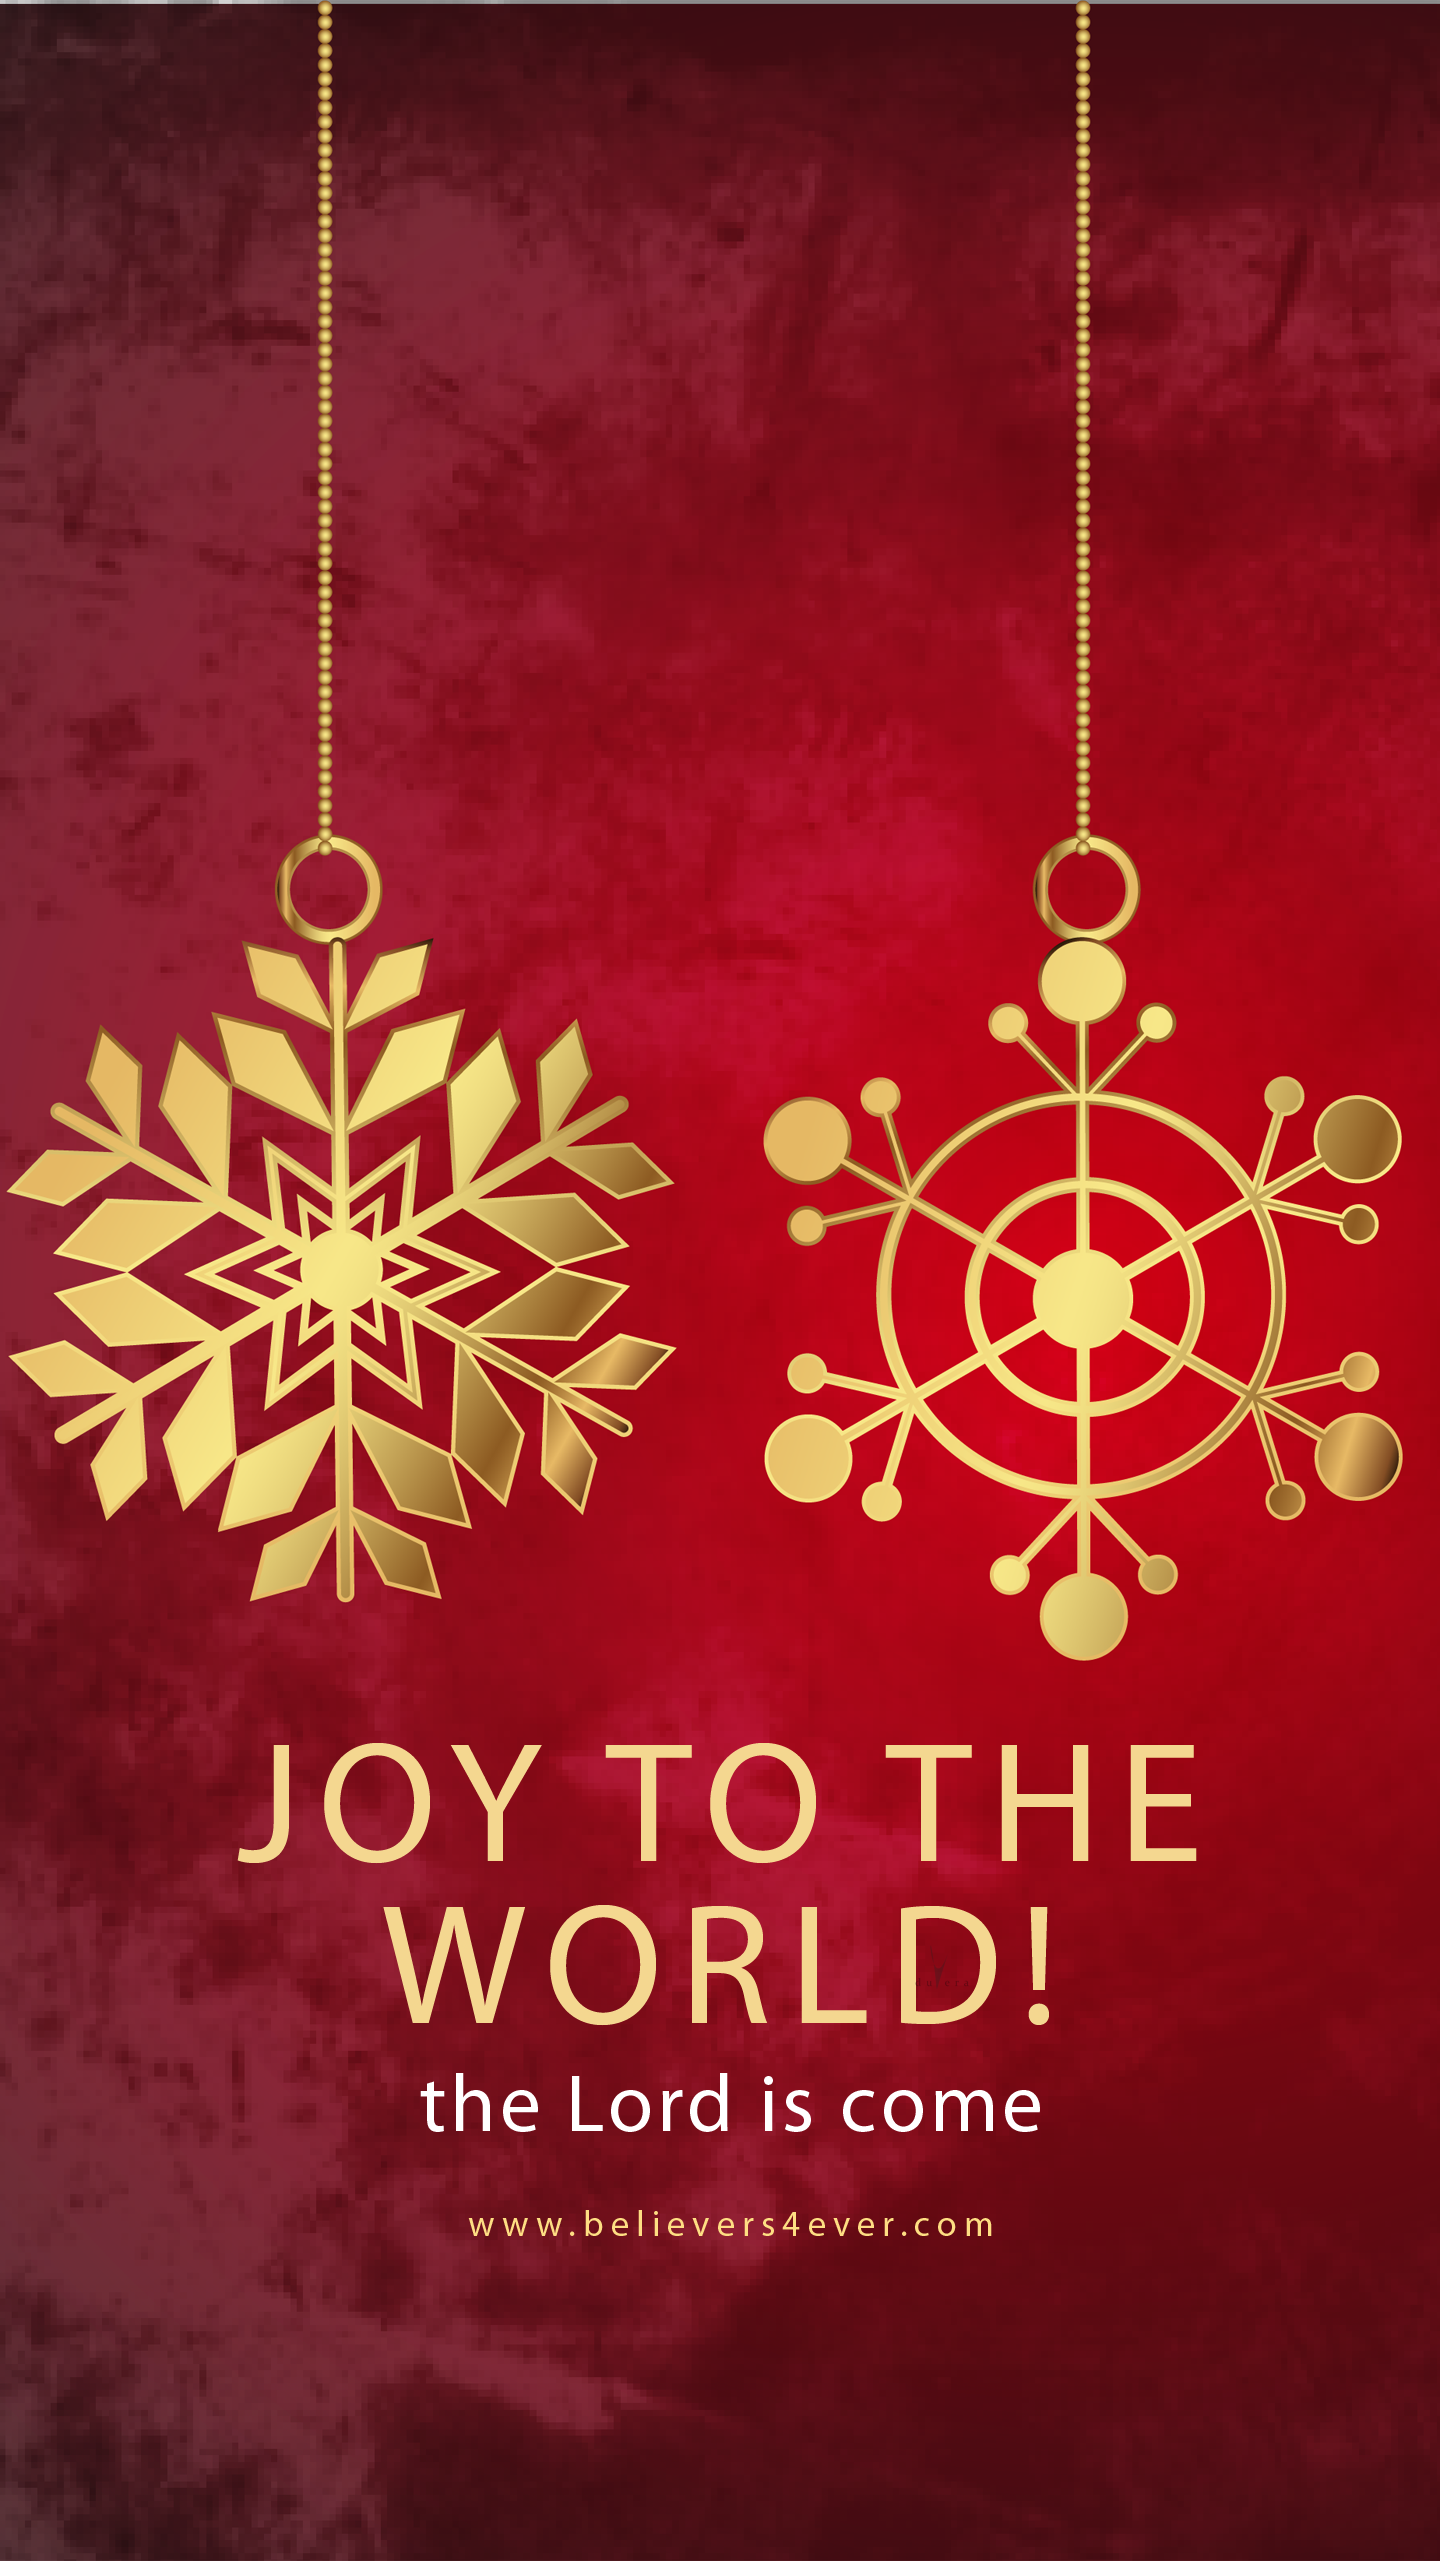 Joy to the world Christmas wallpaper hd Wallpaper iphone 1440x2561